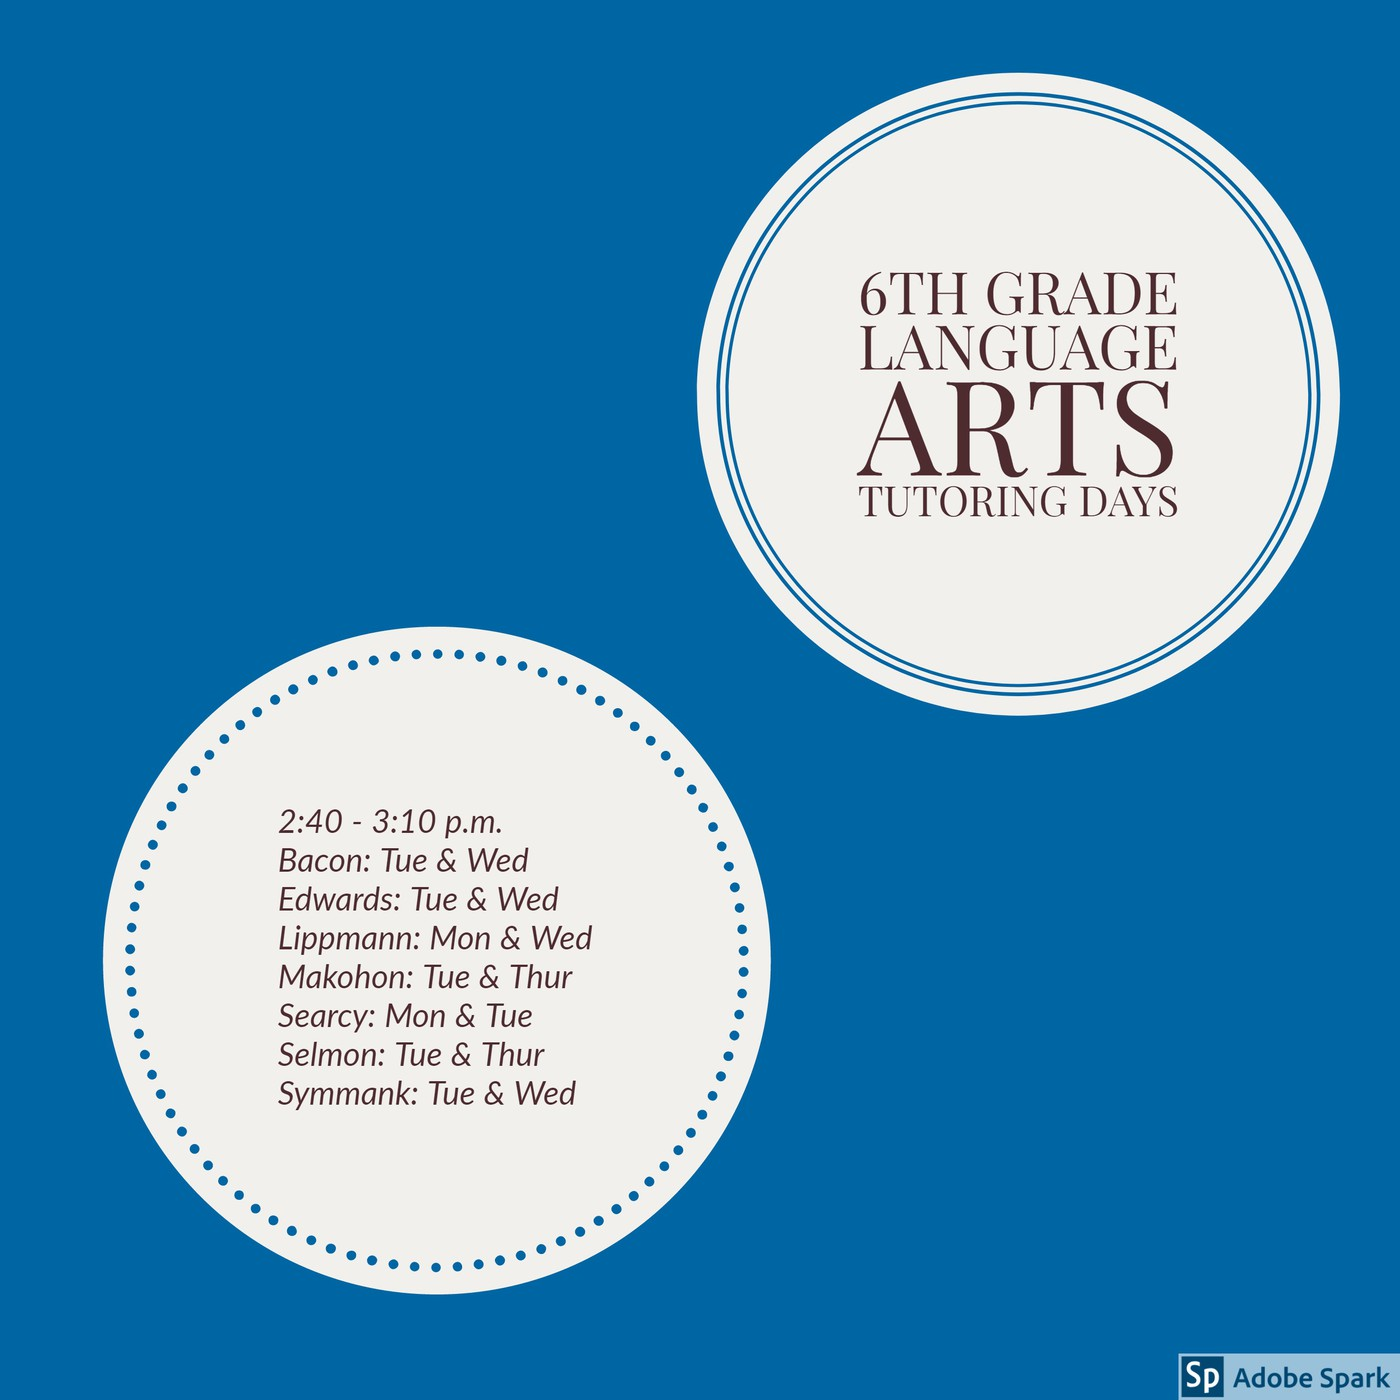 Salyards 6th Grade Language Arts | Smore Newsletters for Education